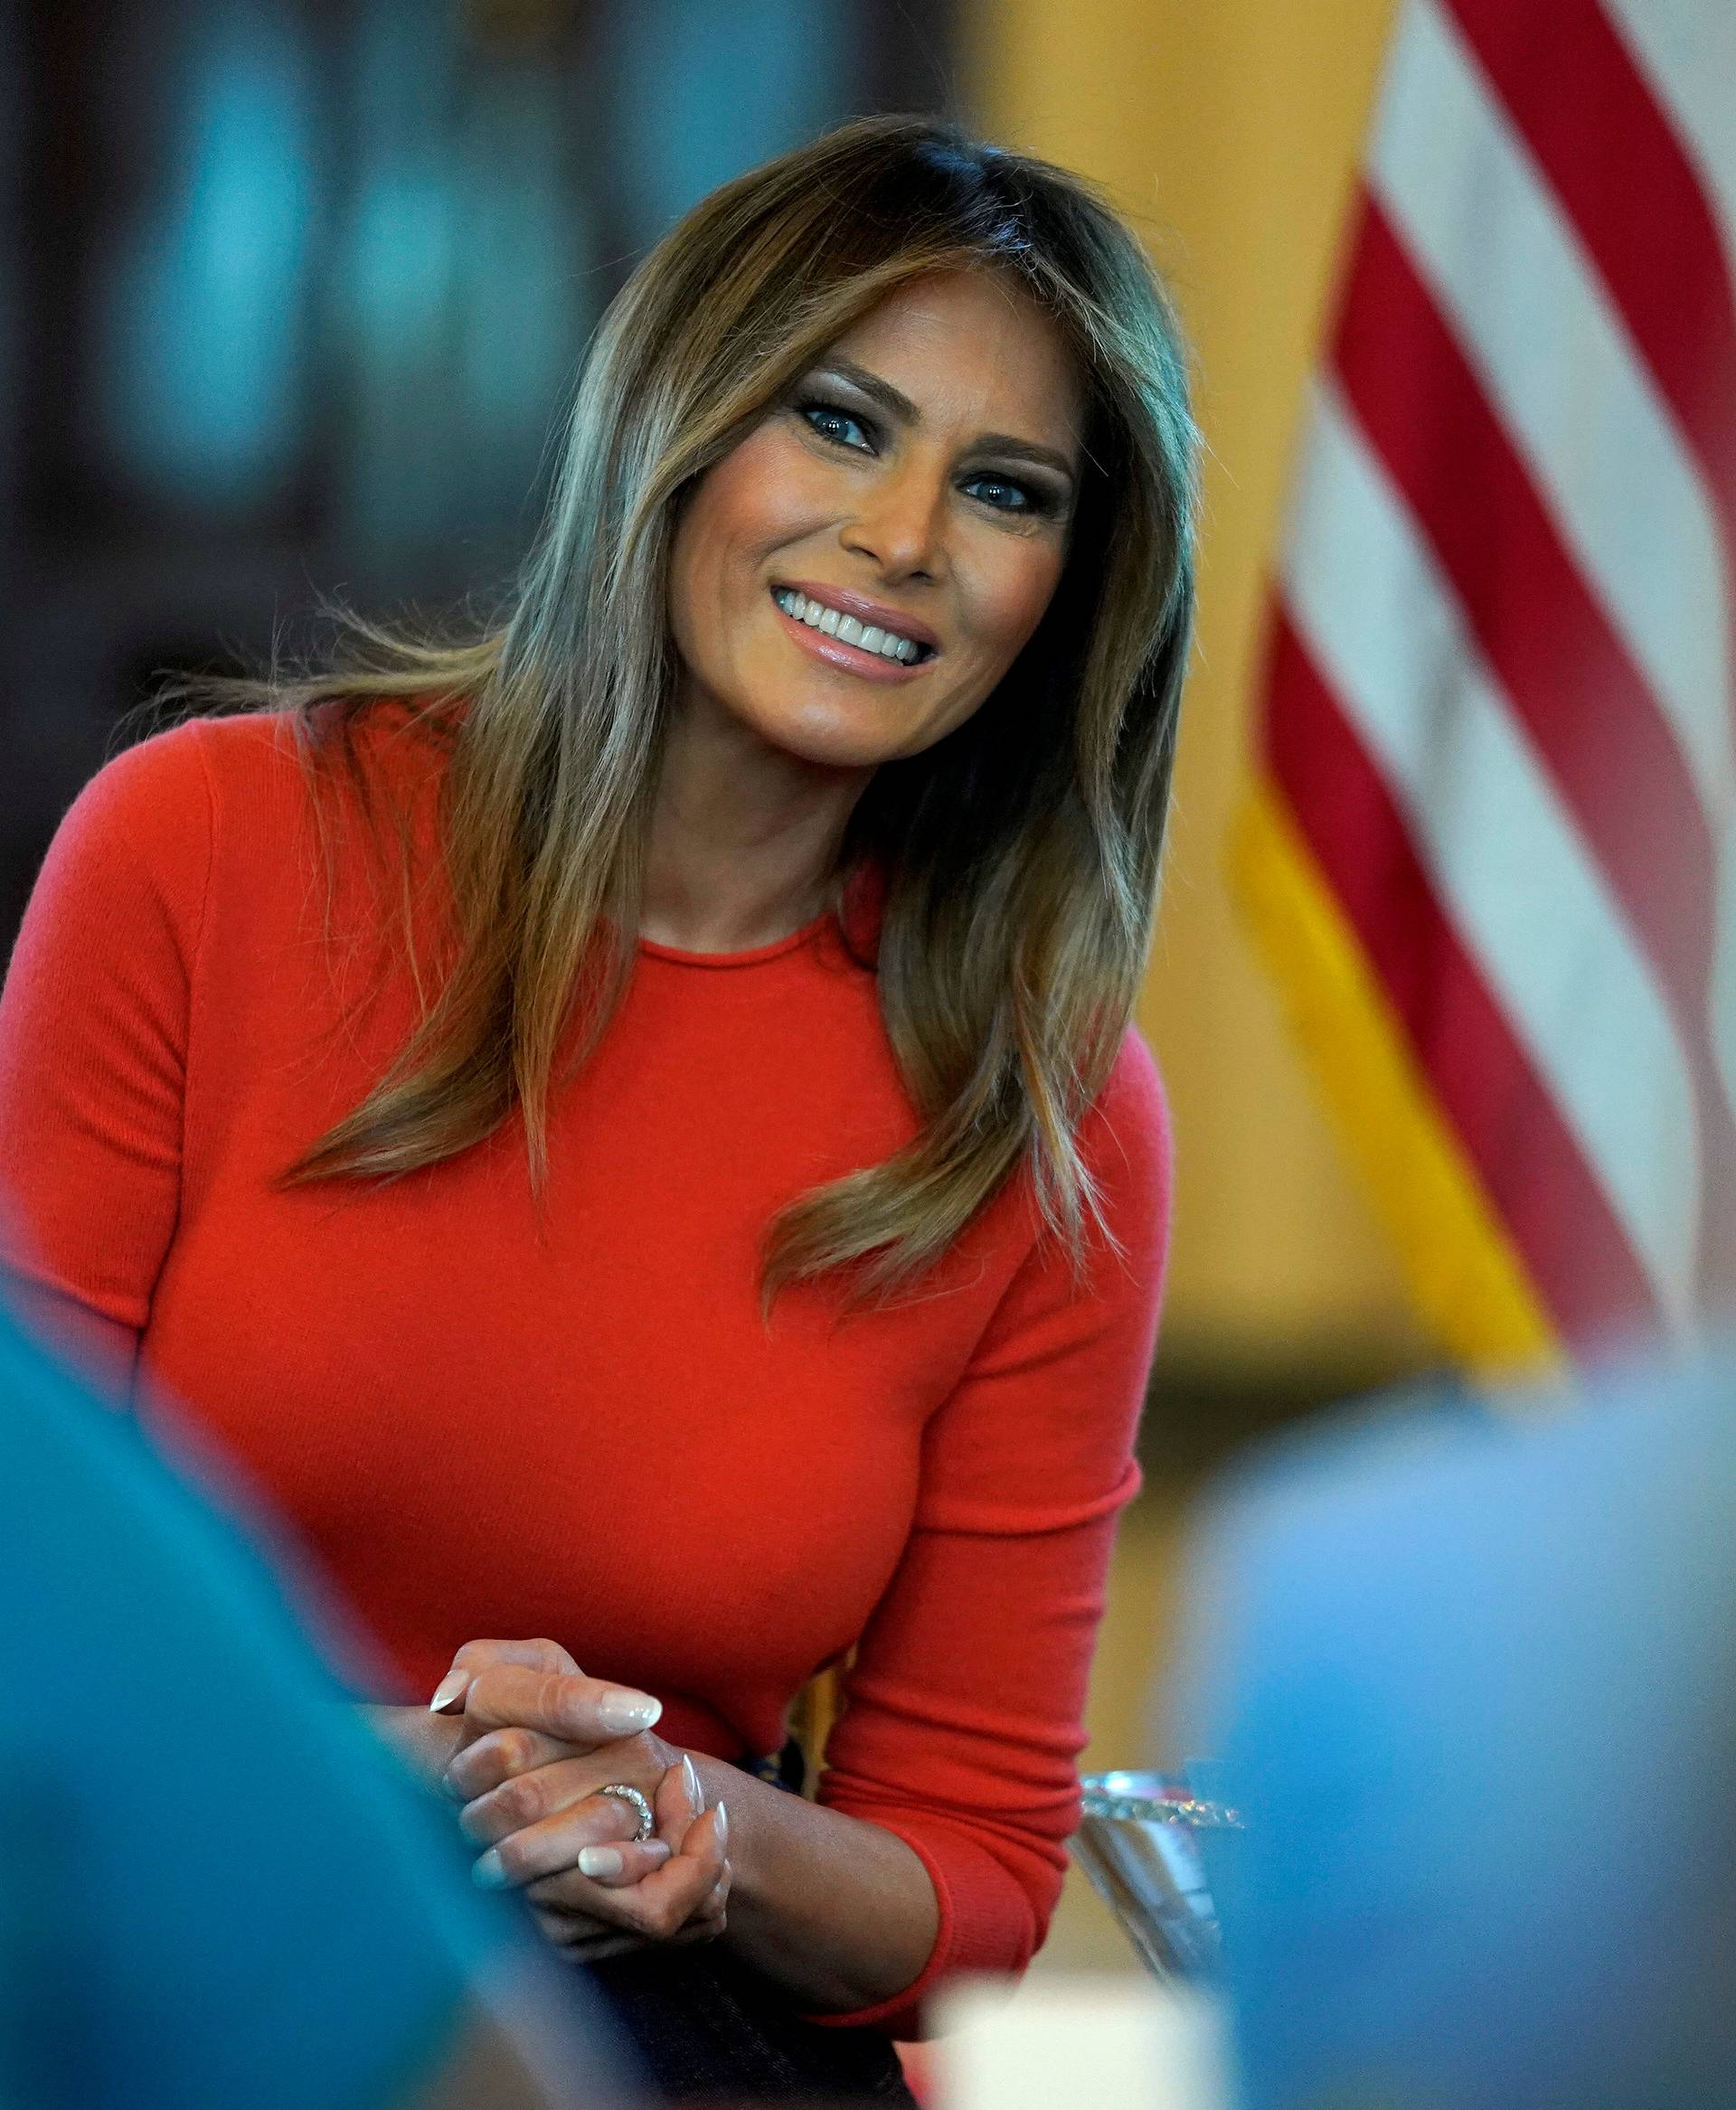 FILE PHOTO: U.S. first lady Melania Trump hosts a listening session with students at the White House in Washington